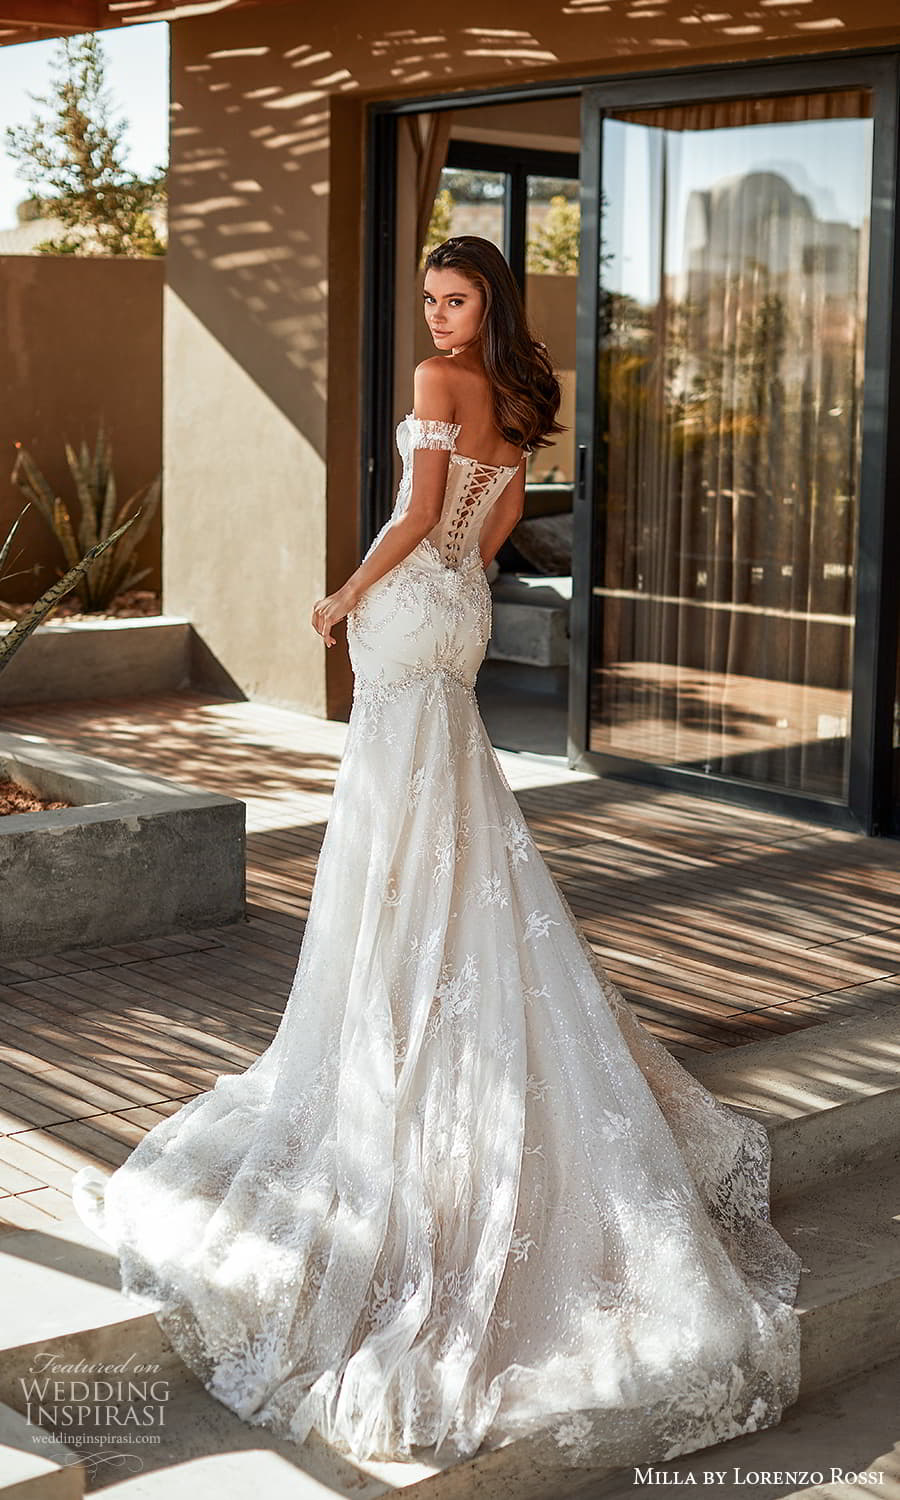 milla lorenzo rossi 2022 bridal detached straps strapless sweetheart neckline fully embellished fit flare mermaid wedding dress chapel train corset lace back (4) bv